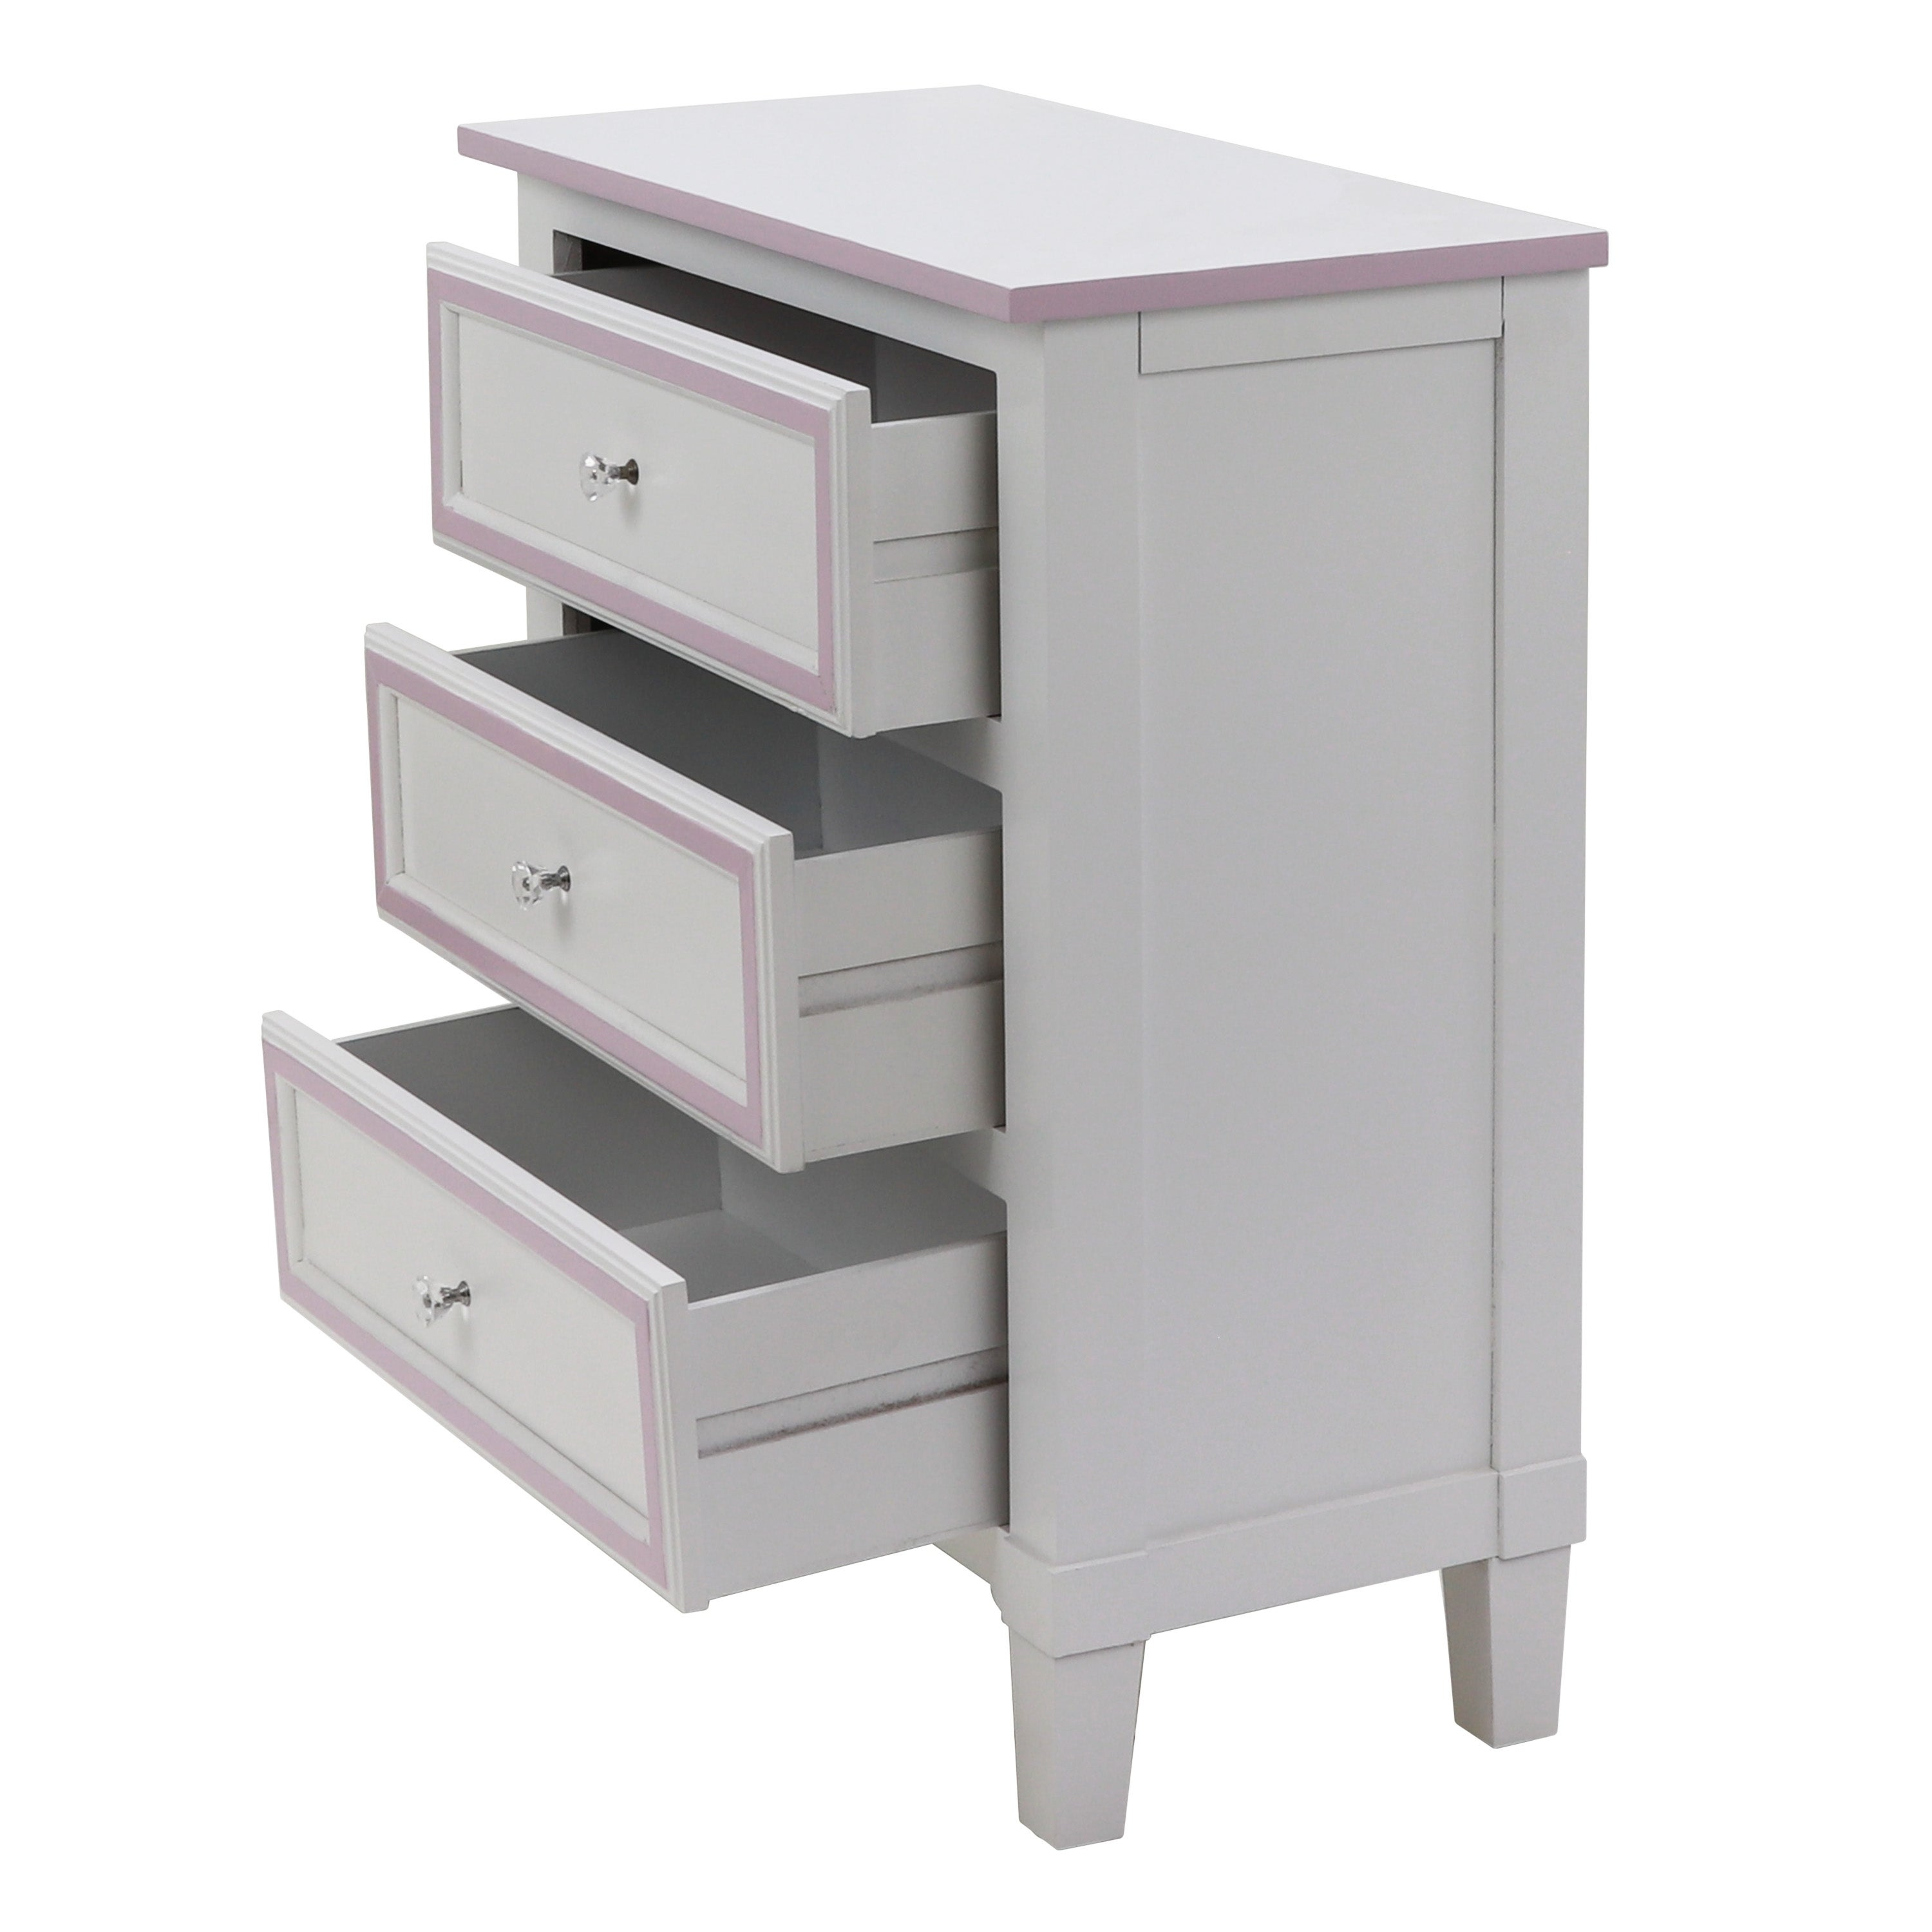 f3b05f1eb5 Shop Becket 3-drawer Wood Finish Side Table - Free Shipping Today -  Overstock - 22823882